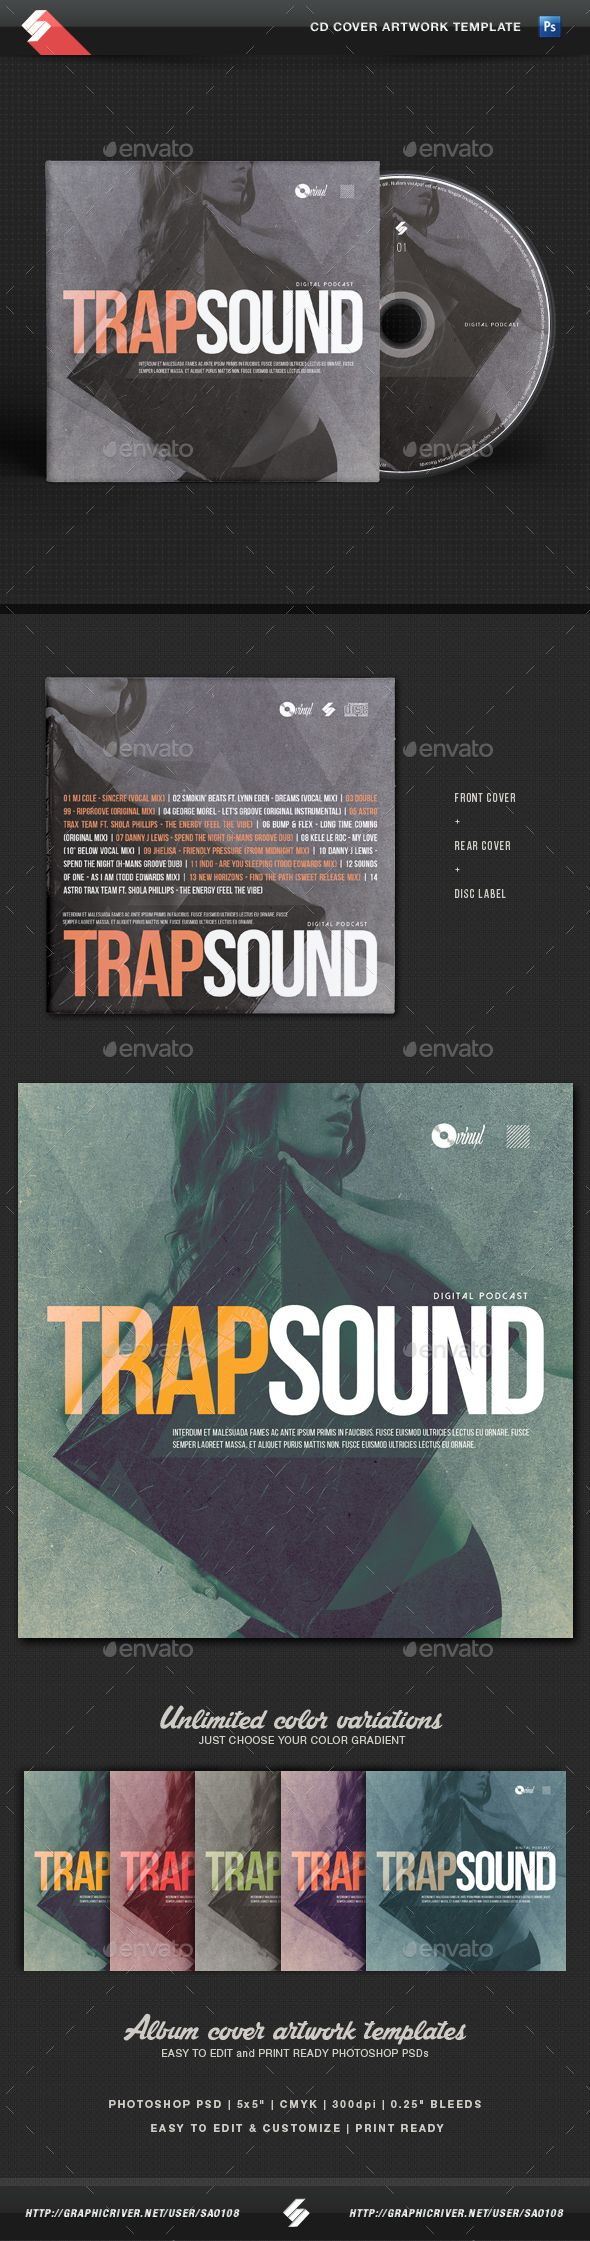 Trap Sound - CD Cover Template PSD. Download here: http ...